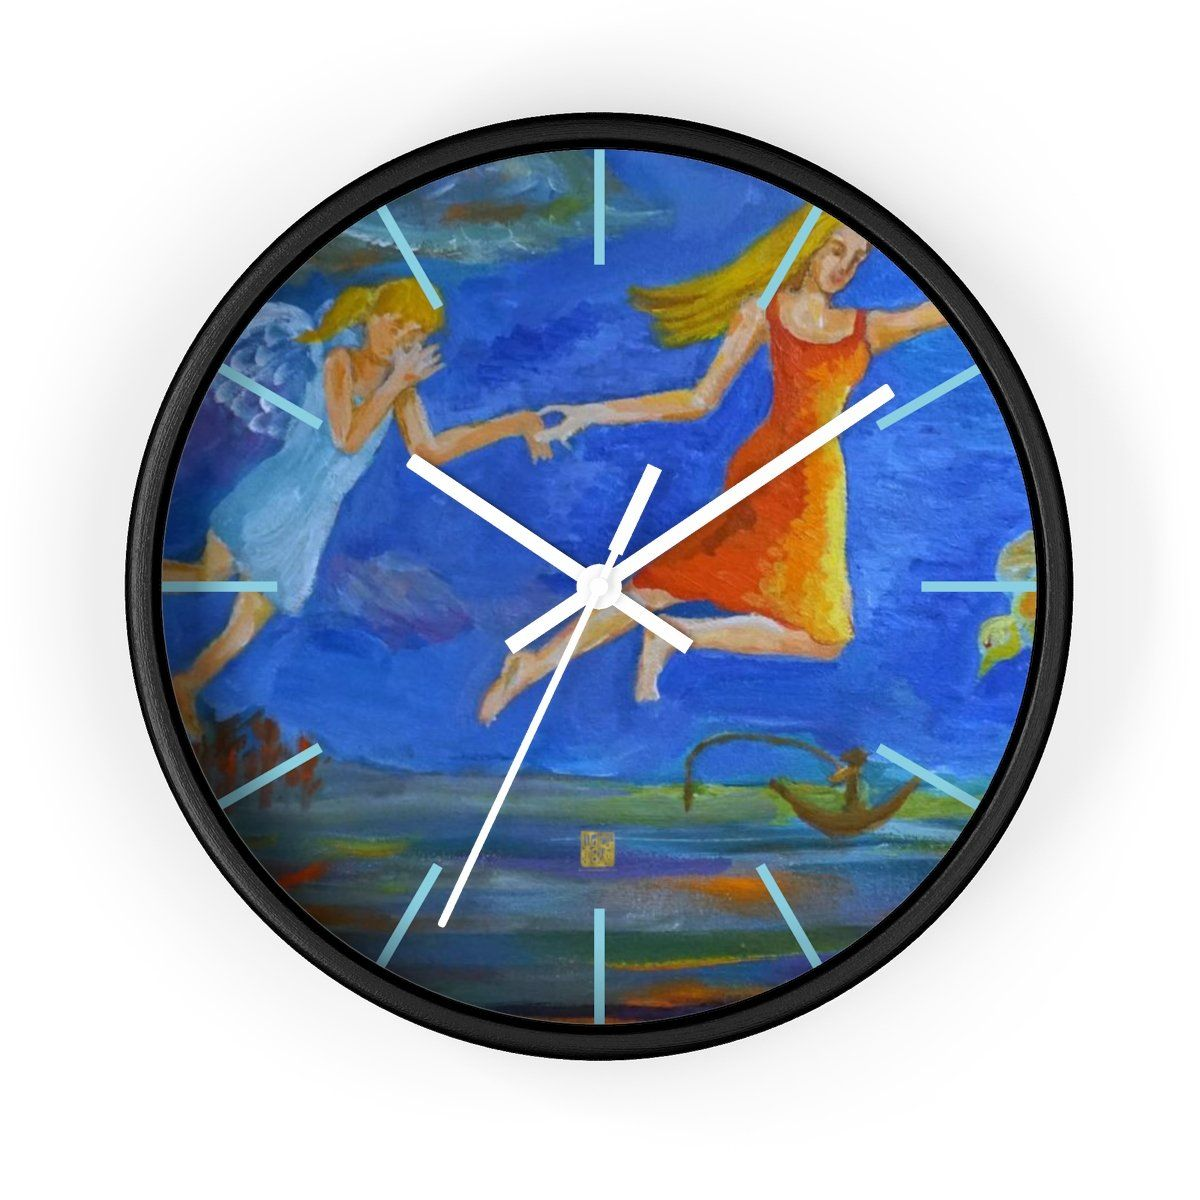 Angels From Heaven Designer 10 Inch Large Blue Modern Wall Clock Made In Usa Wall Clock Clock Wall Clock Modern